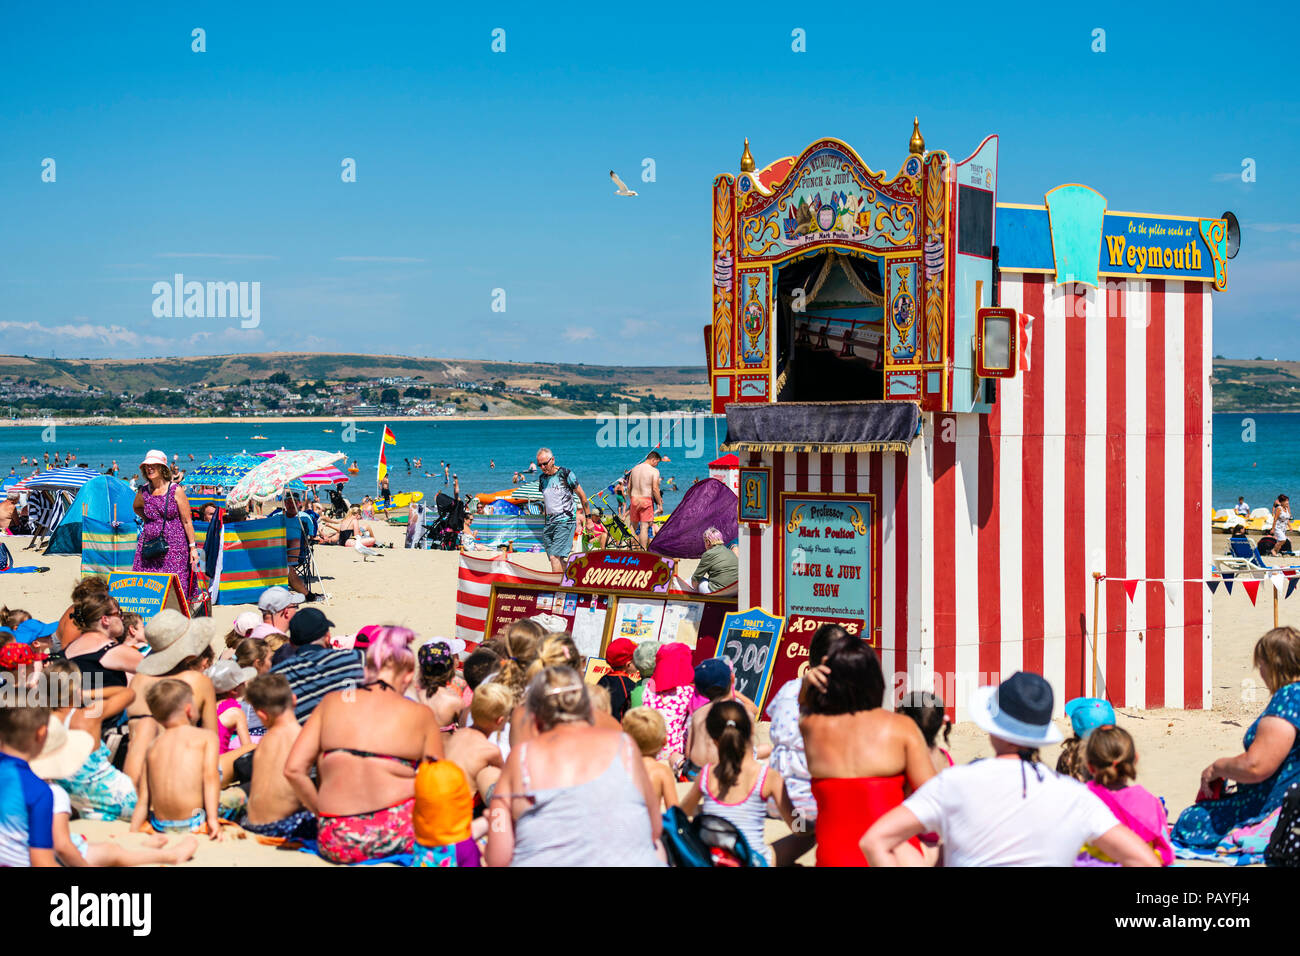 Punch and Judy show on the beach at Weymouth, Dorset, UK. - Stock Image